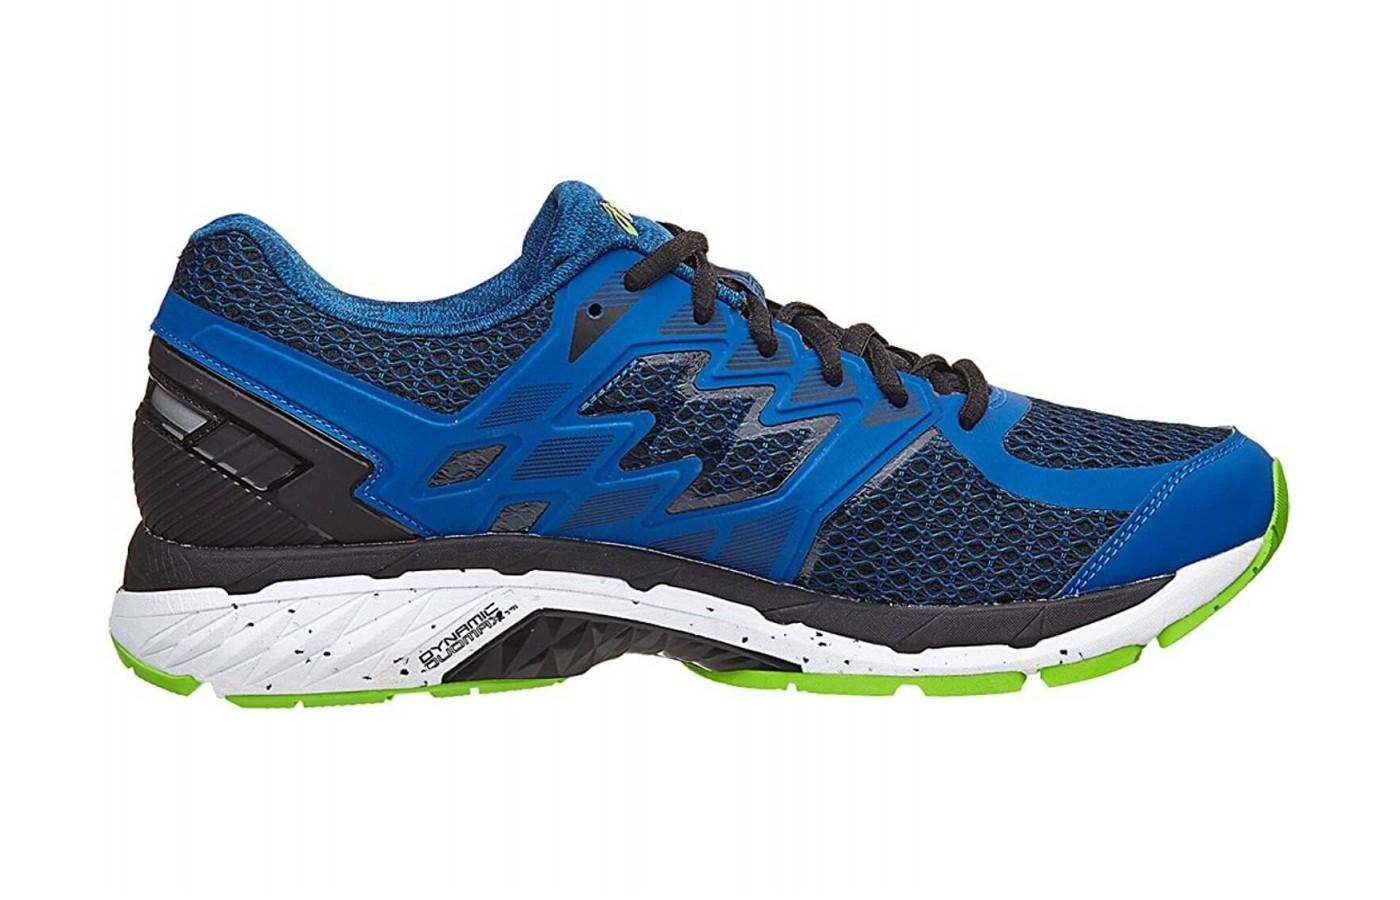 The Asics GT 3000 5 has stability features to help slow over-pronation